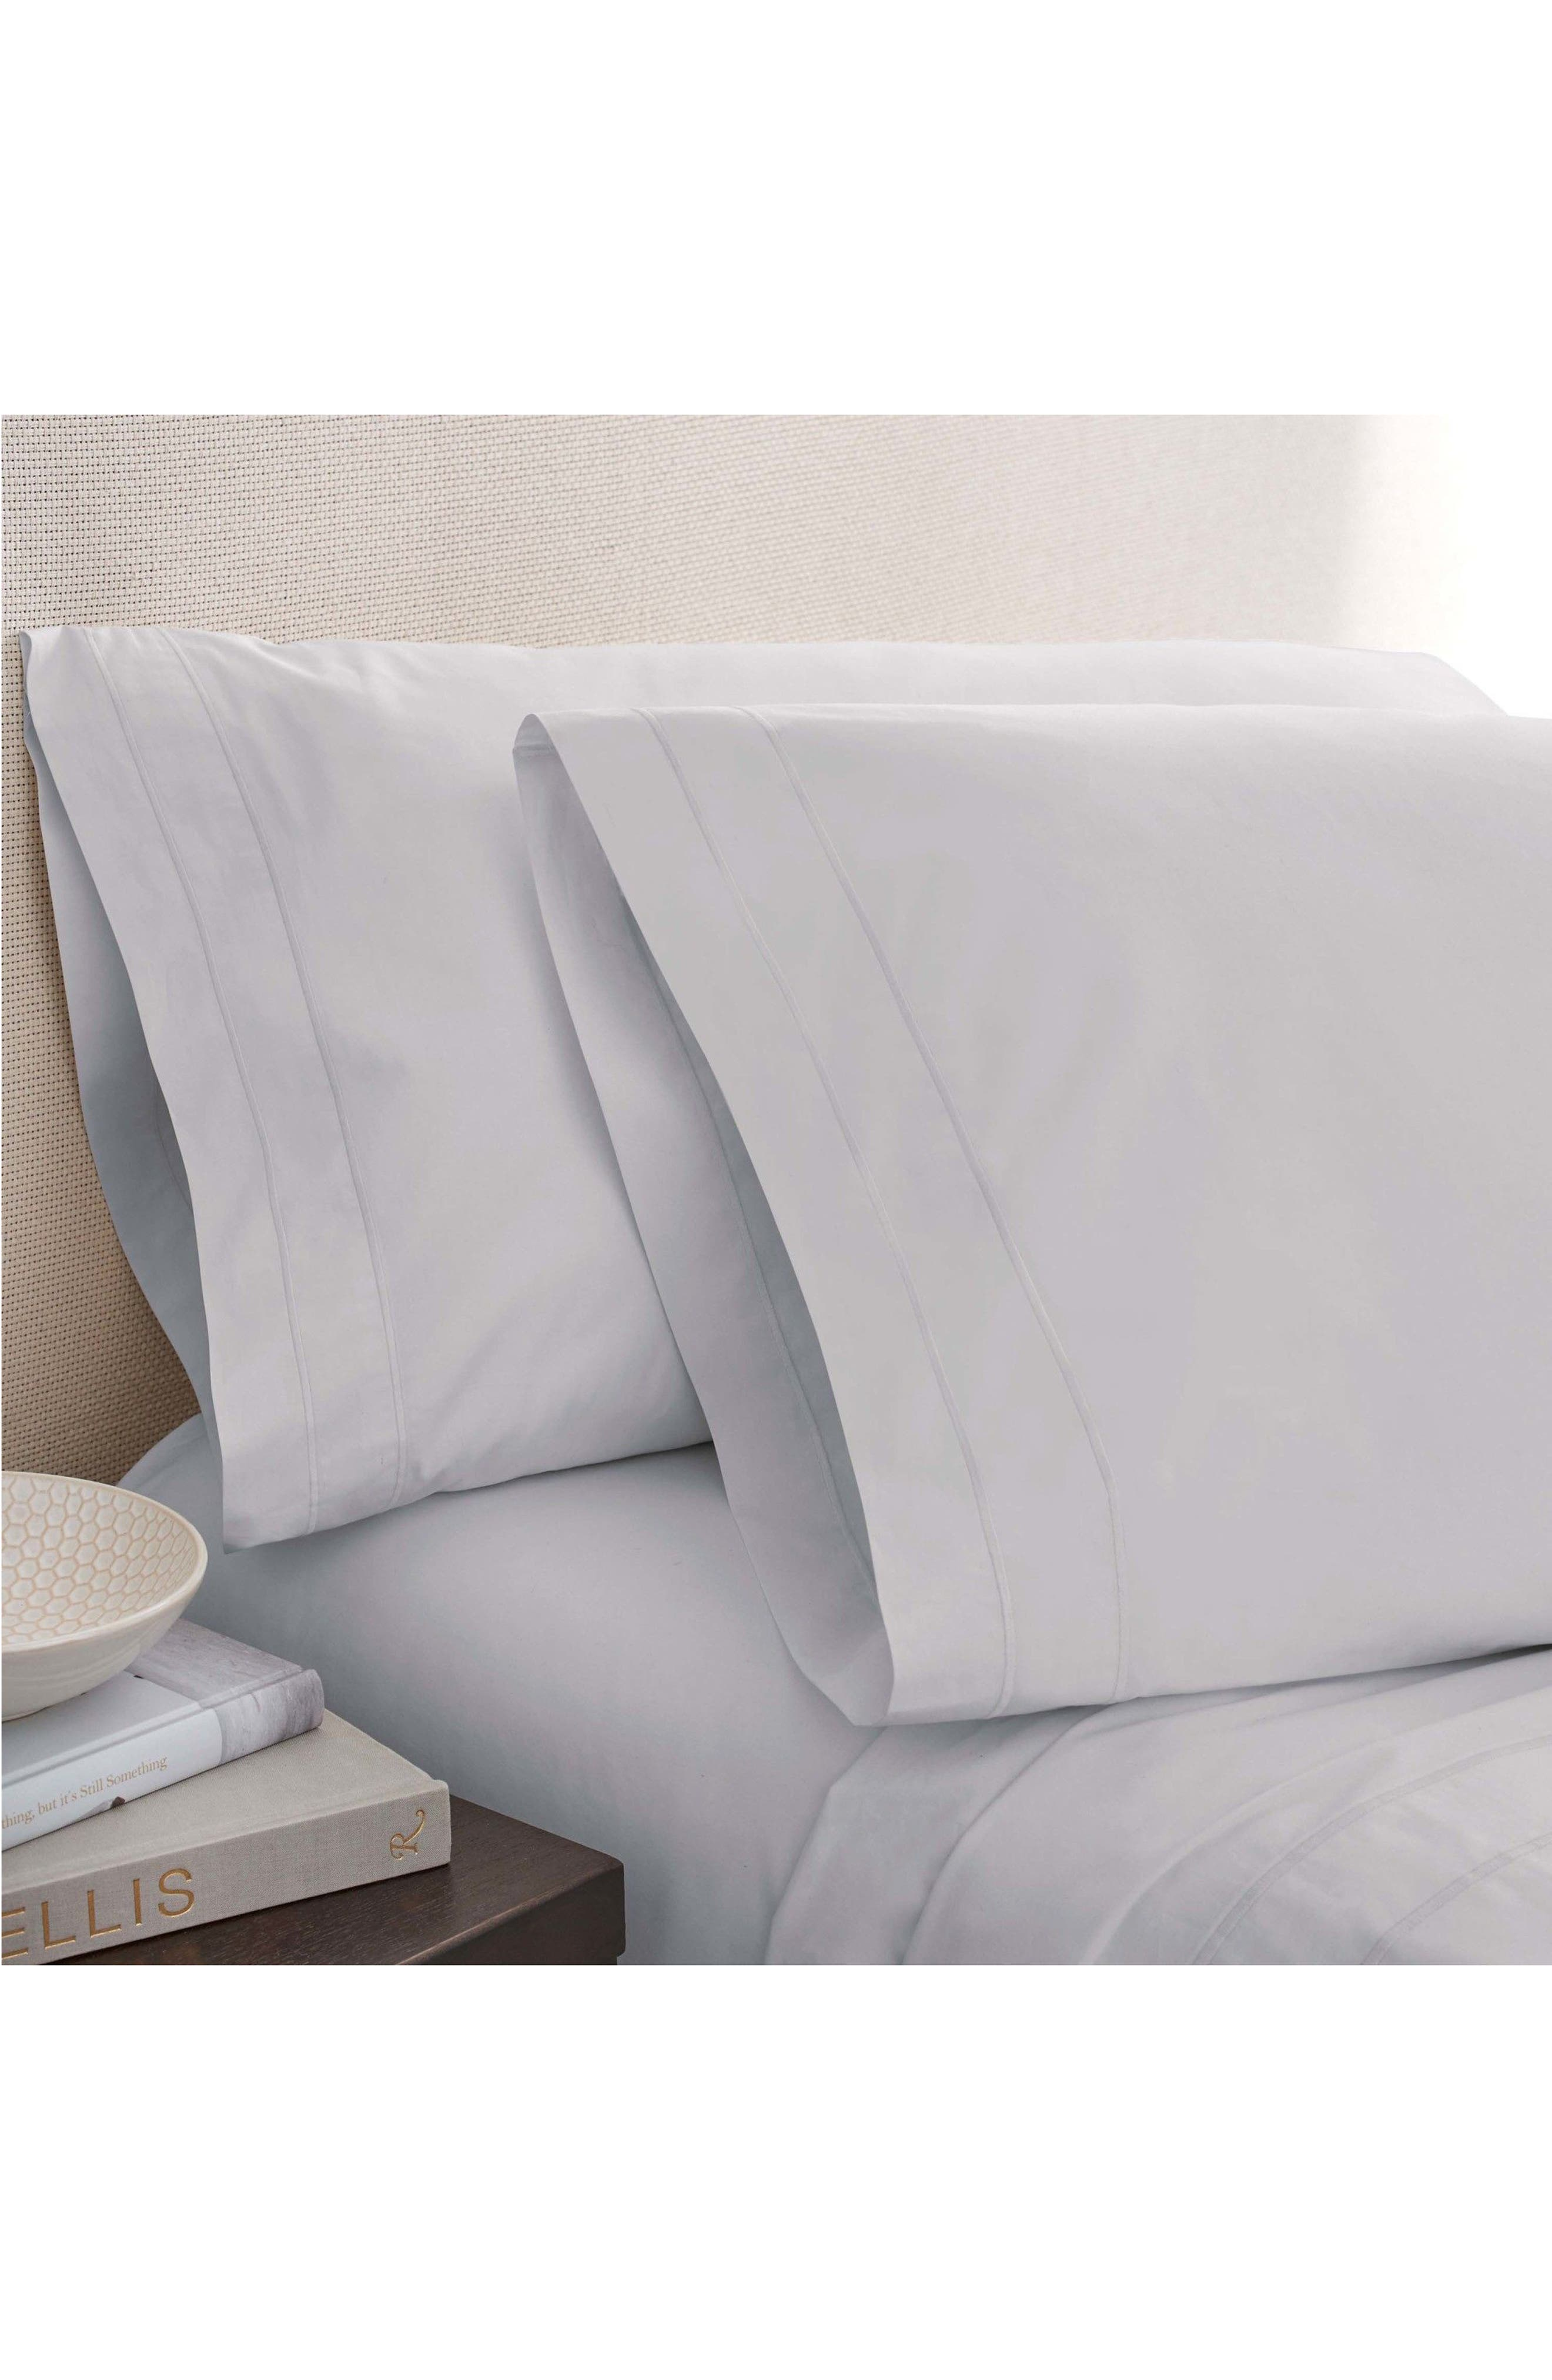 Main Image - Portico The Denizen Organic Cotton Fitted Sheet